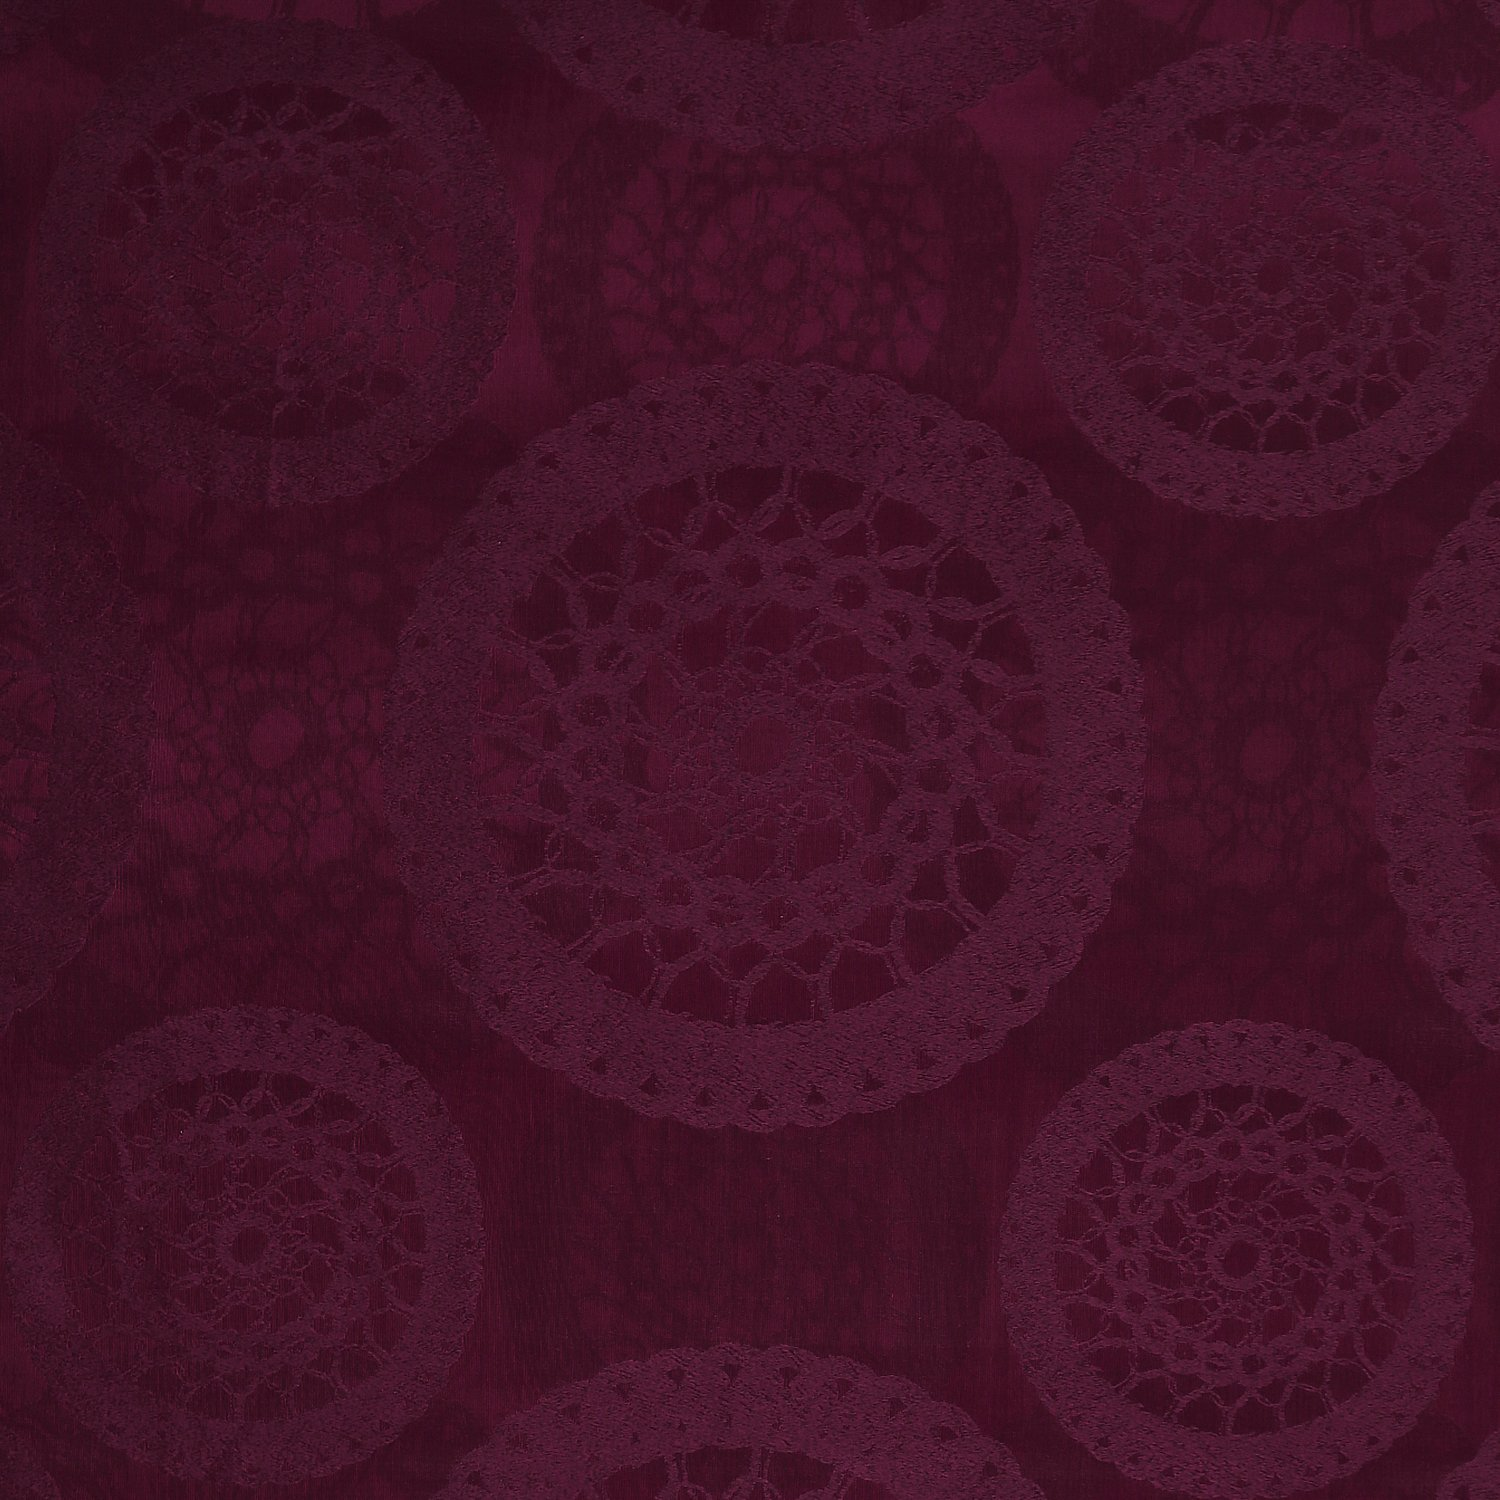 Deconovo Home Decor Jacquard Grommet Curtain with FlowerPattern Panel 52 by 84 Inch 2 Panels Purple